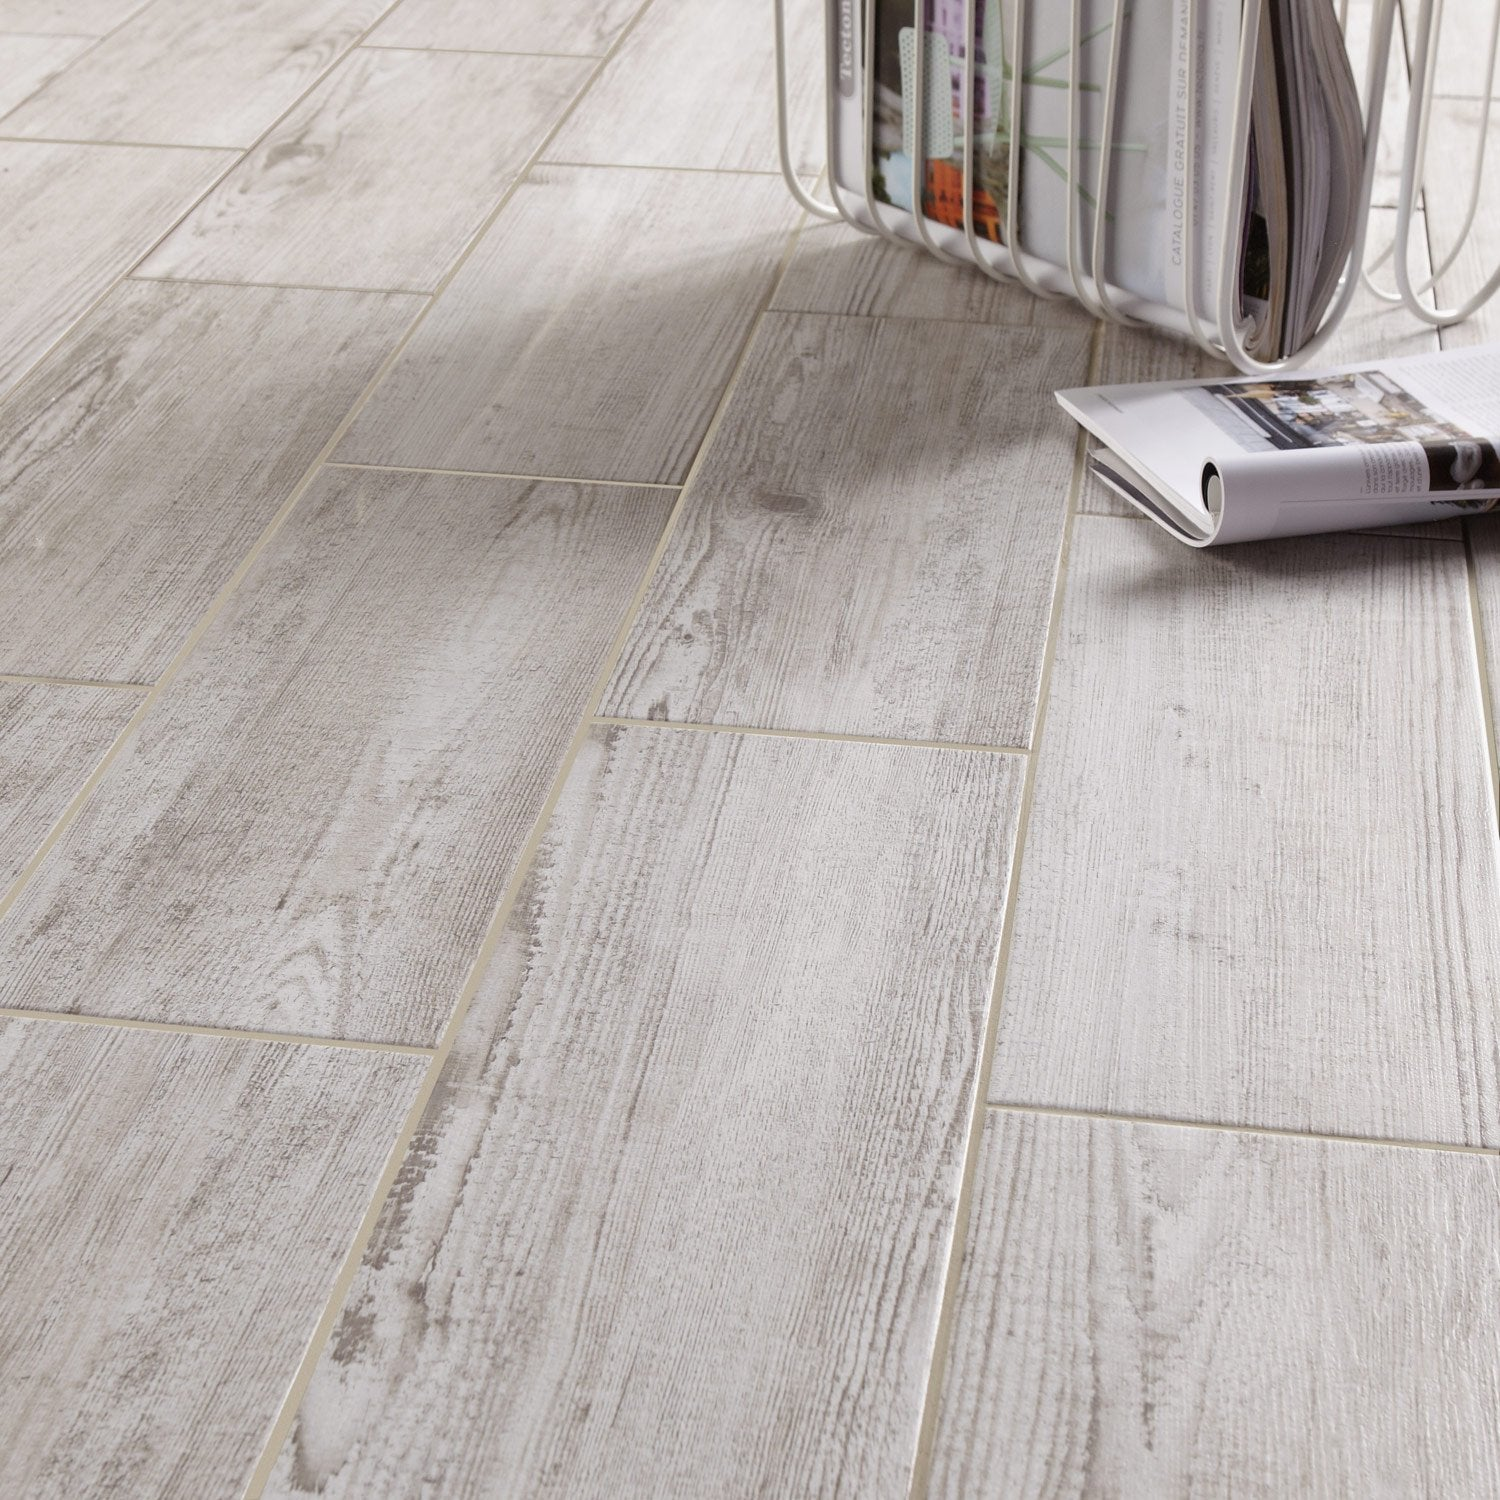 Carrelage aspect bois gris for Carrelage en bois